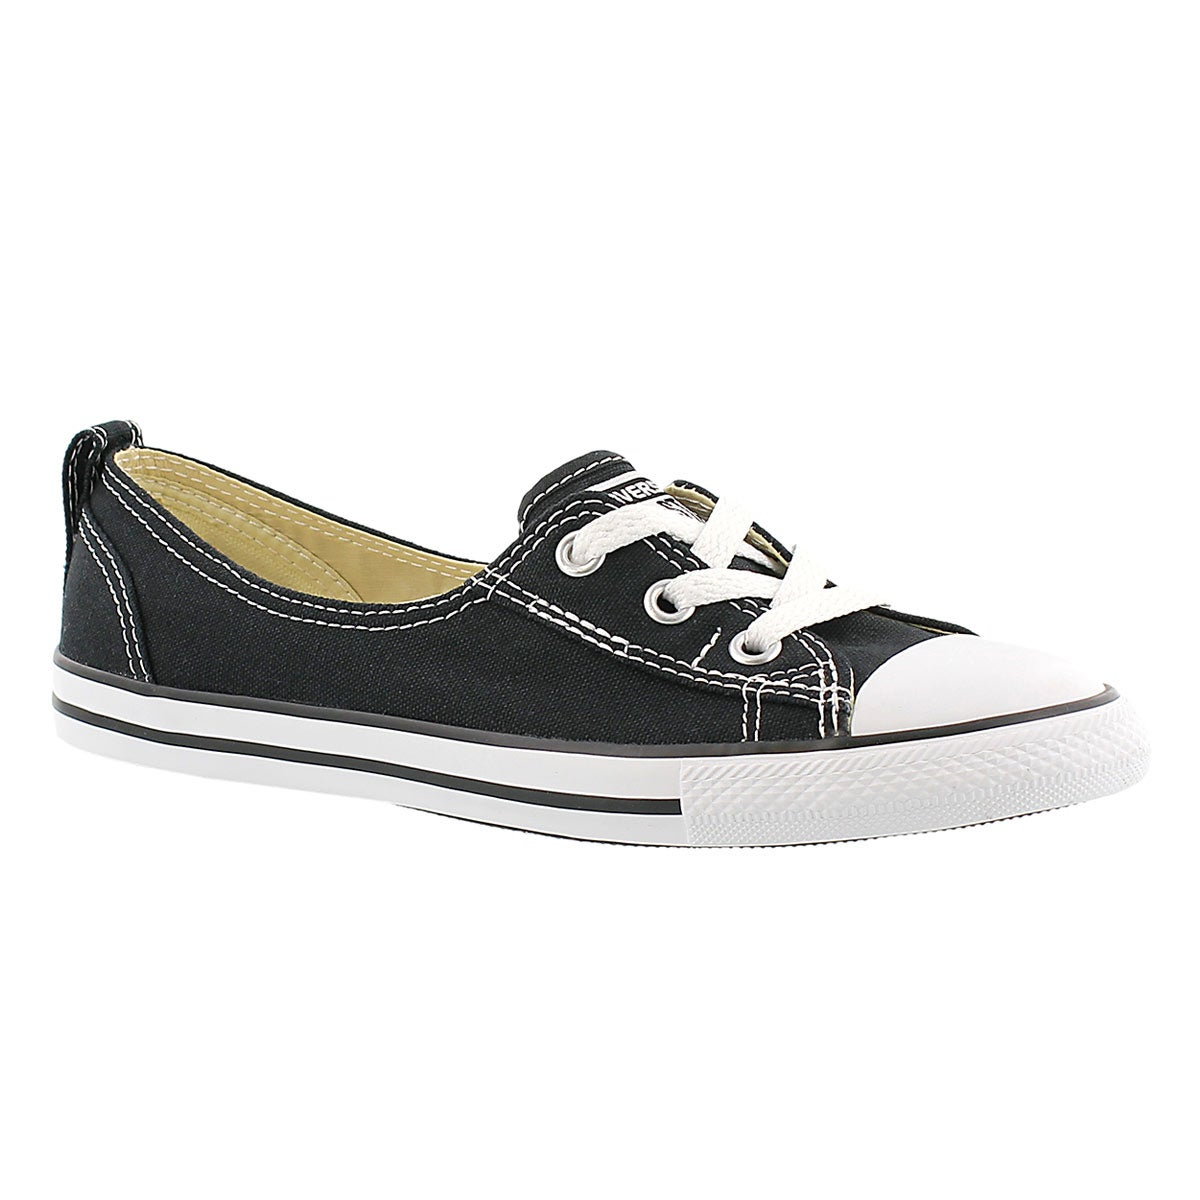 Women's CT ALL STAR BALLET LACE black slip-ons